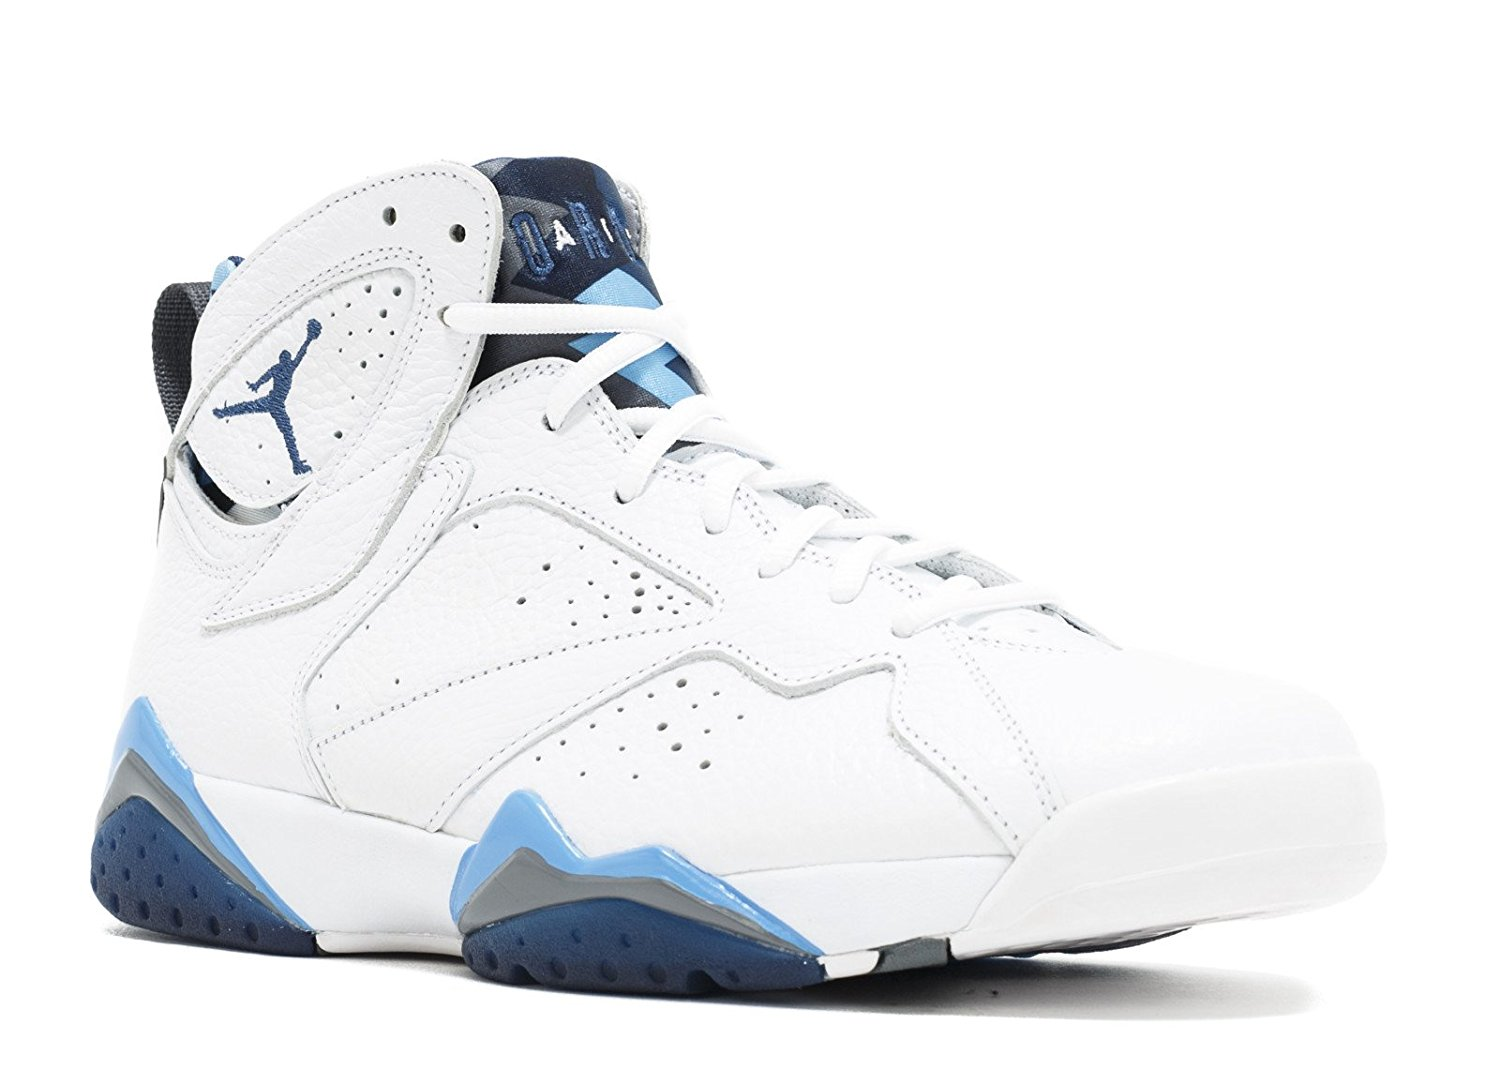 7caf45363de486 Get Quotations · Jordan Air 7 Retro French Blue Men s Shoes White Frech Blue-University  Blue-